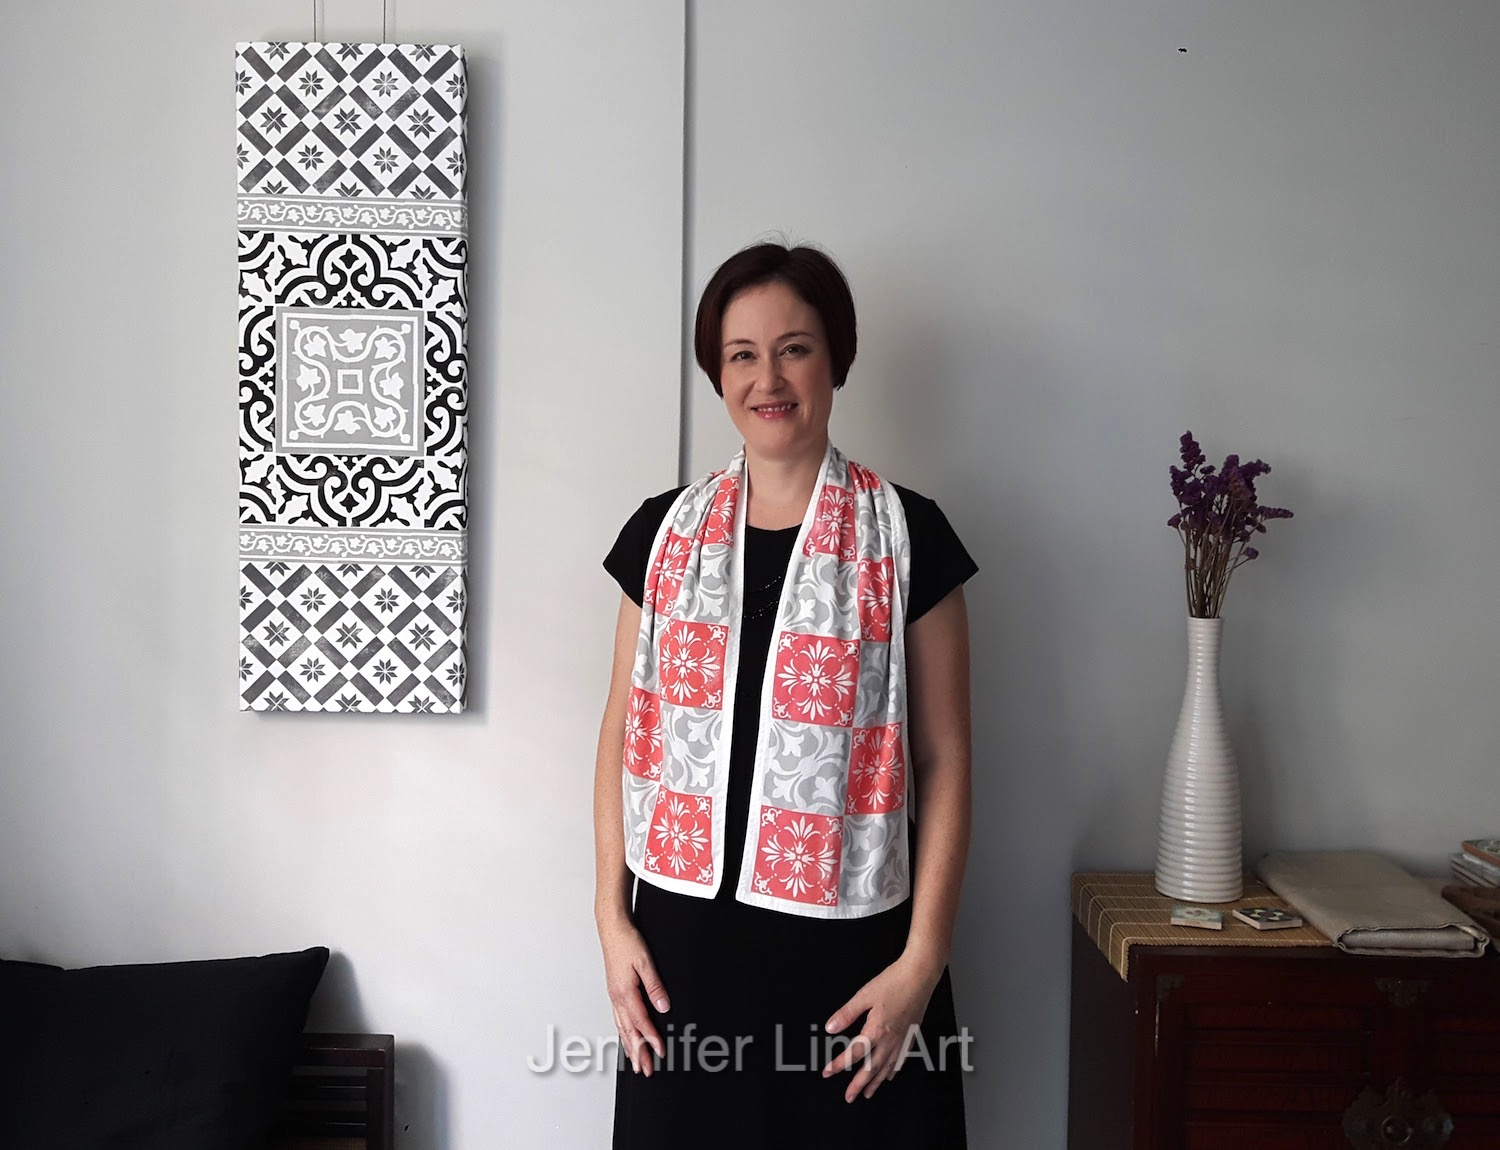 jennifer-lim-art-handprinted-scarf-05-wm.jpg